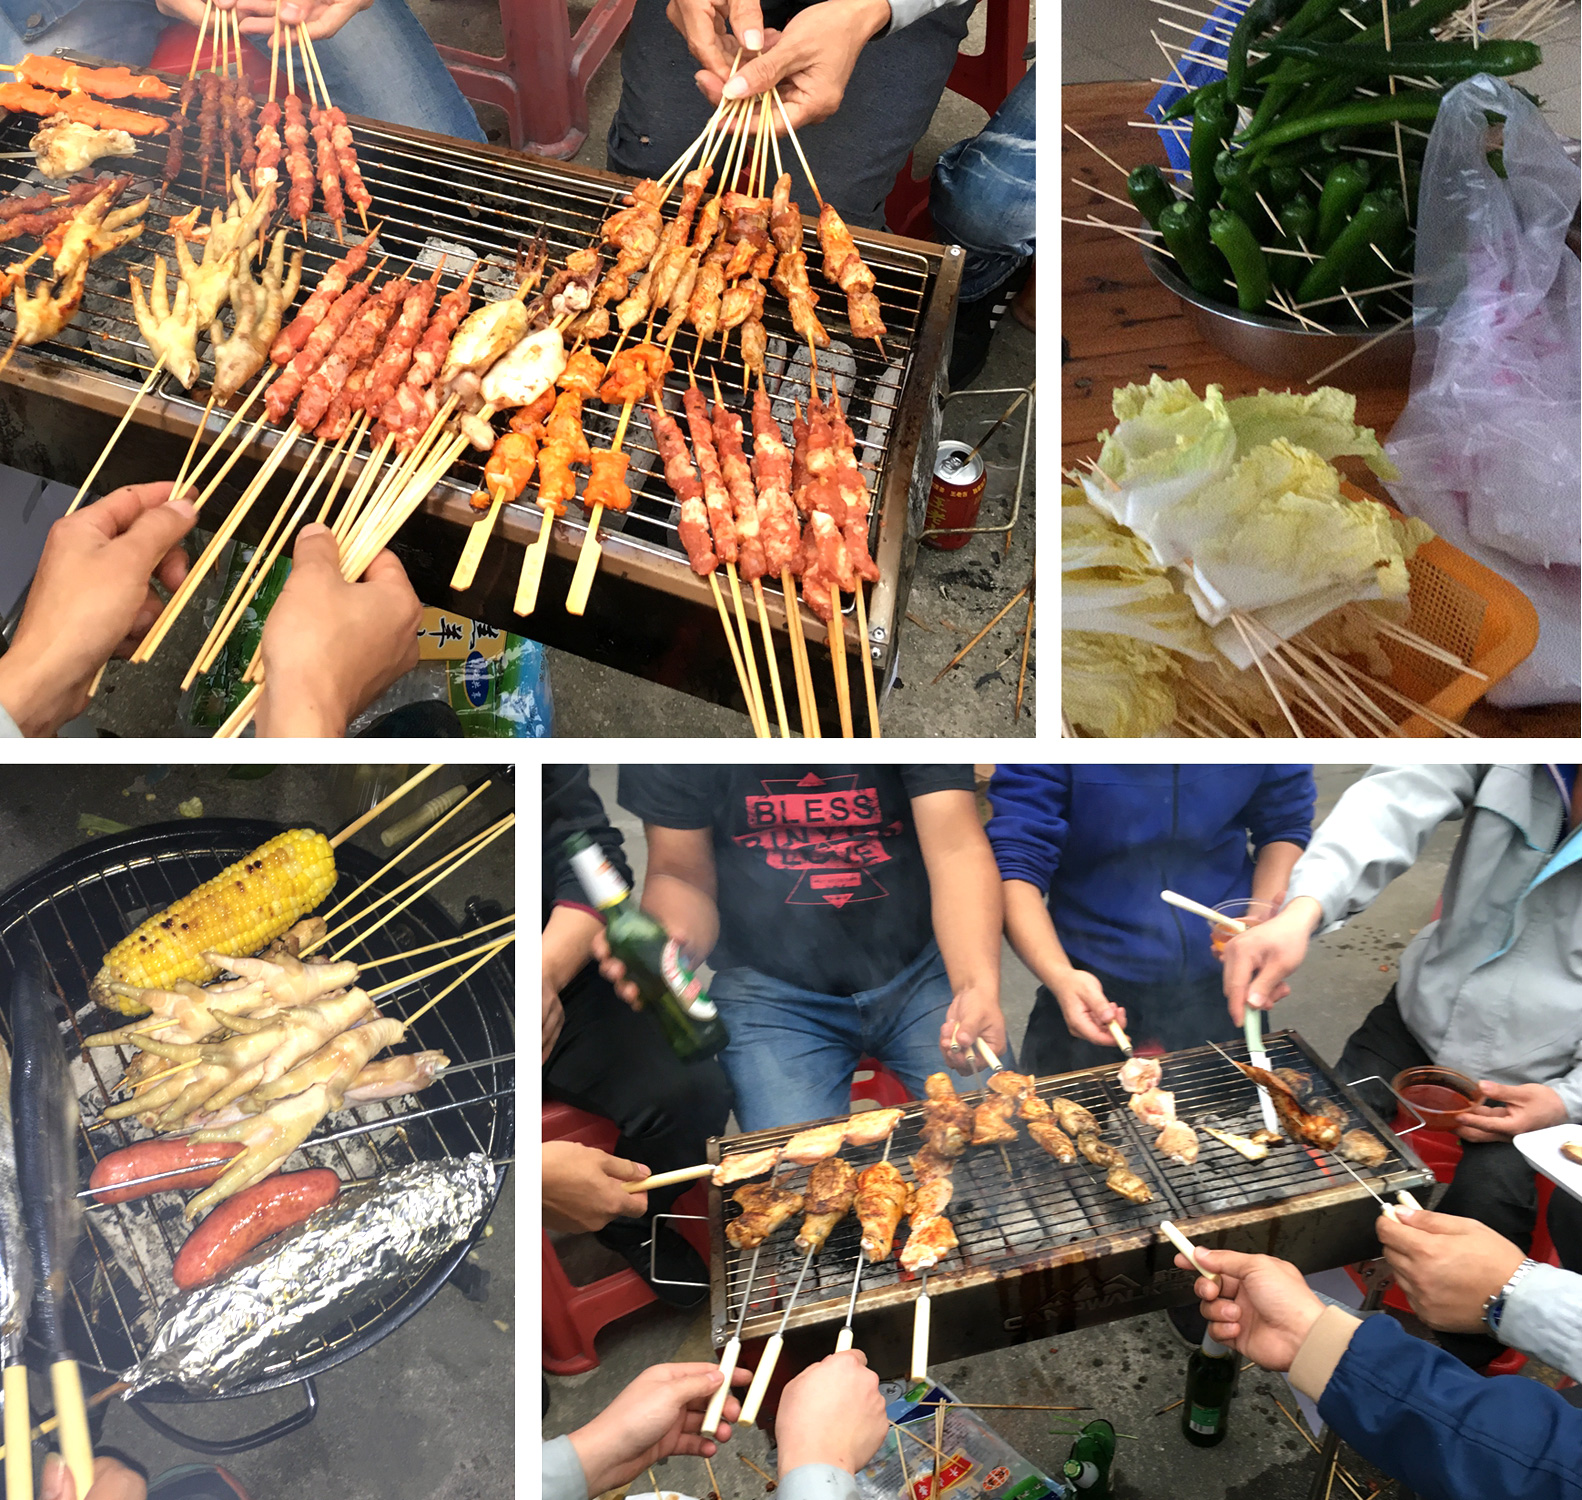 Wewon Employees cooking the chickens, beef, and sea food during the Barbecue Party